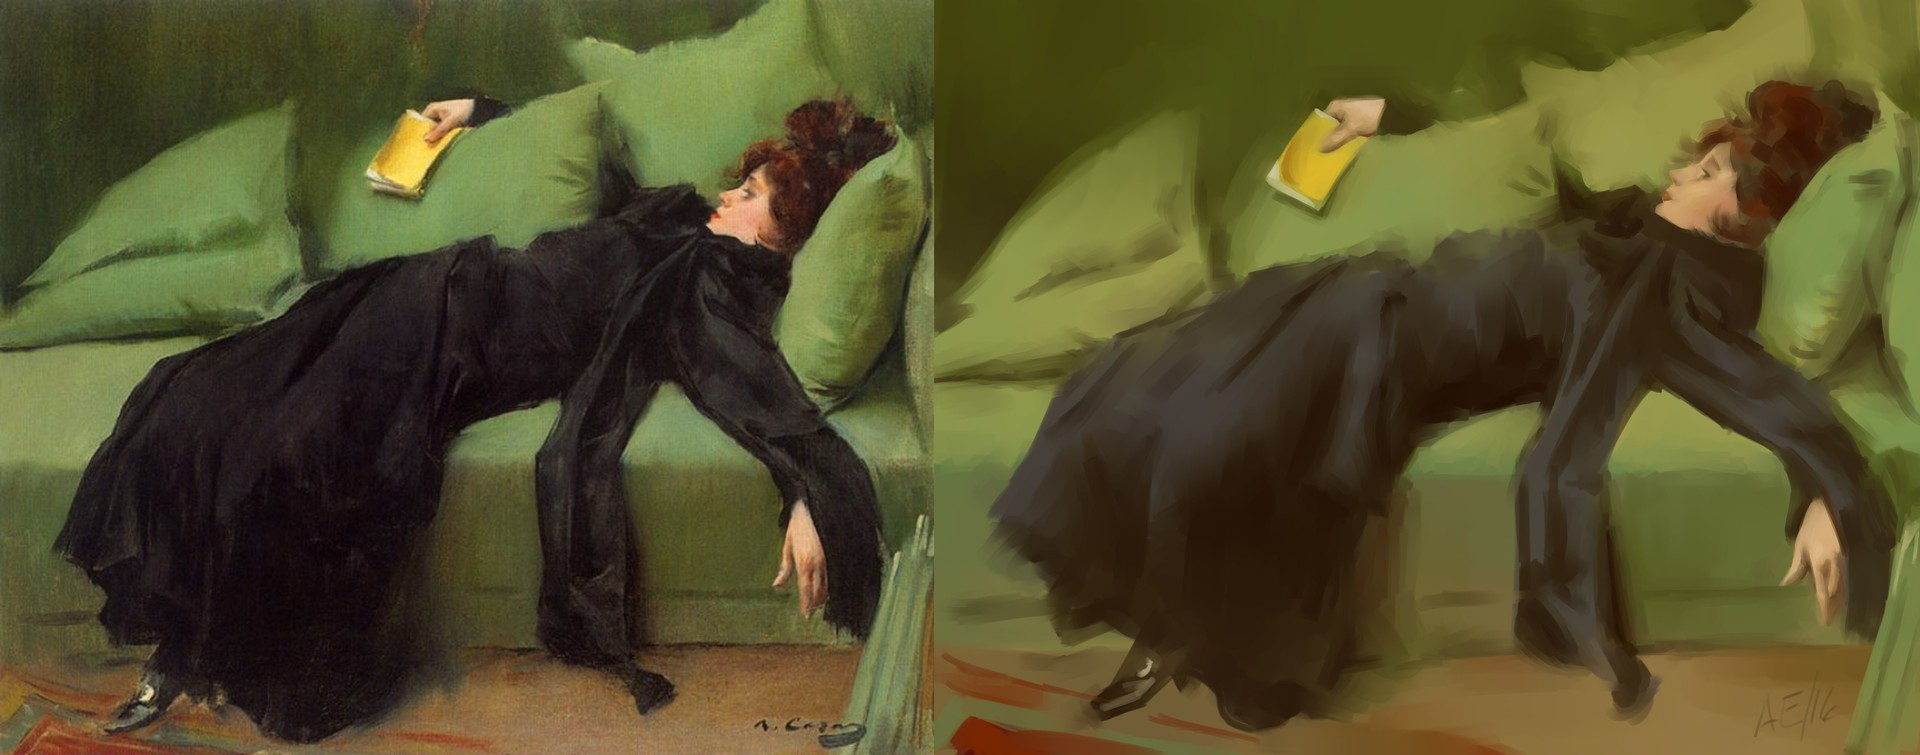 After the Ball (after Ramon Casas y Carbo)